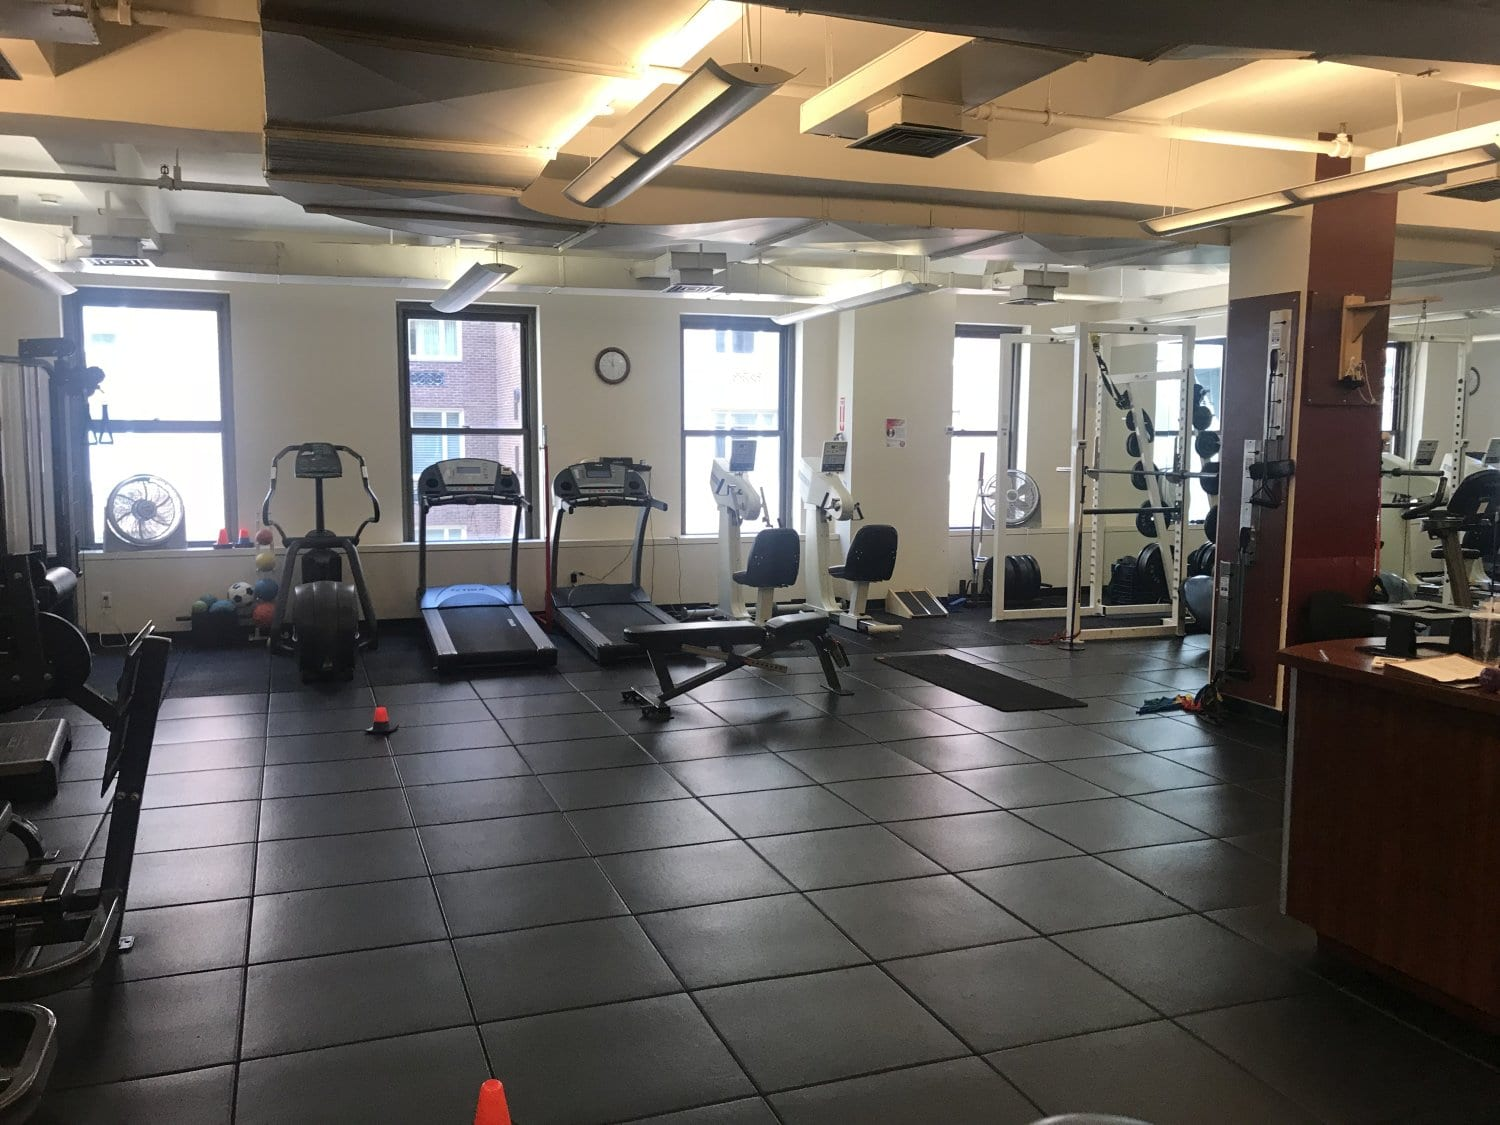 Here is an image of our training room in our physical therapy clinic in Manhattan, New York City at Midtown East.